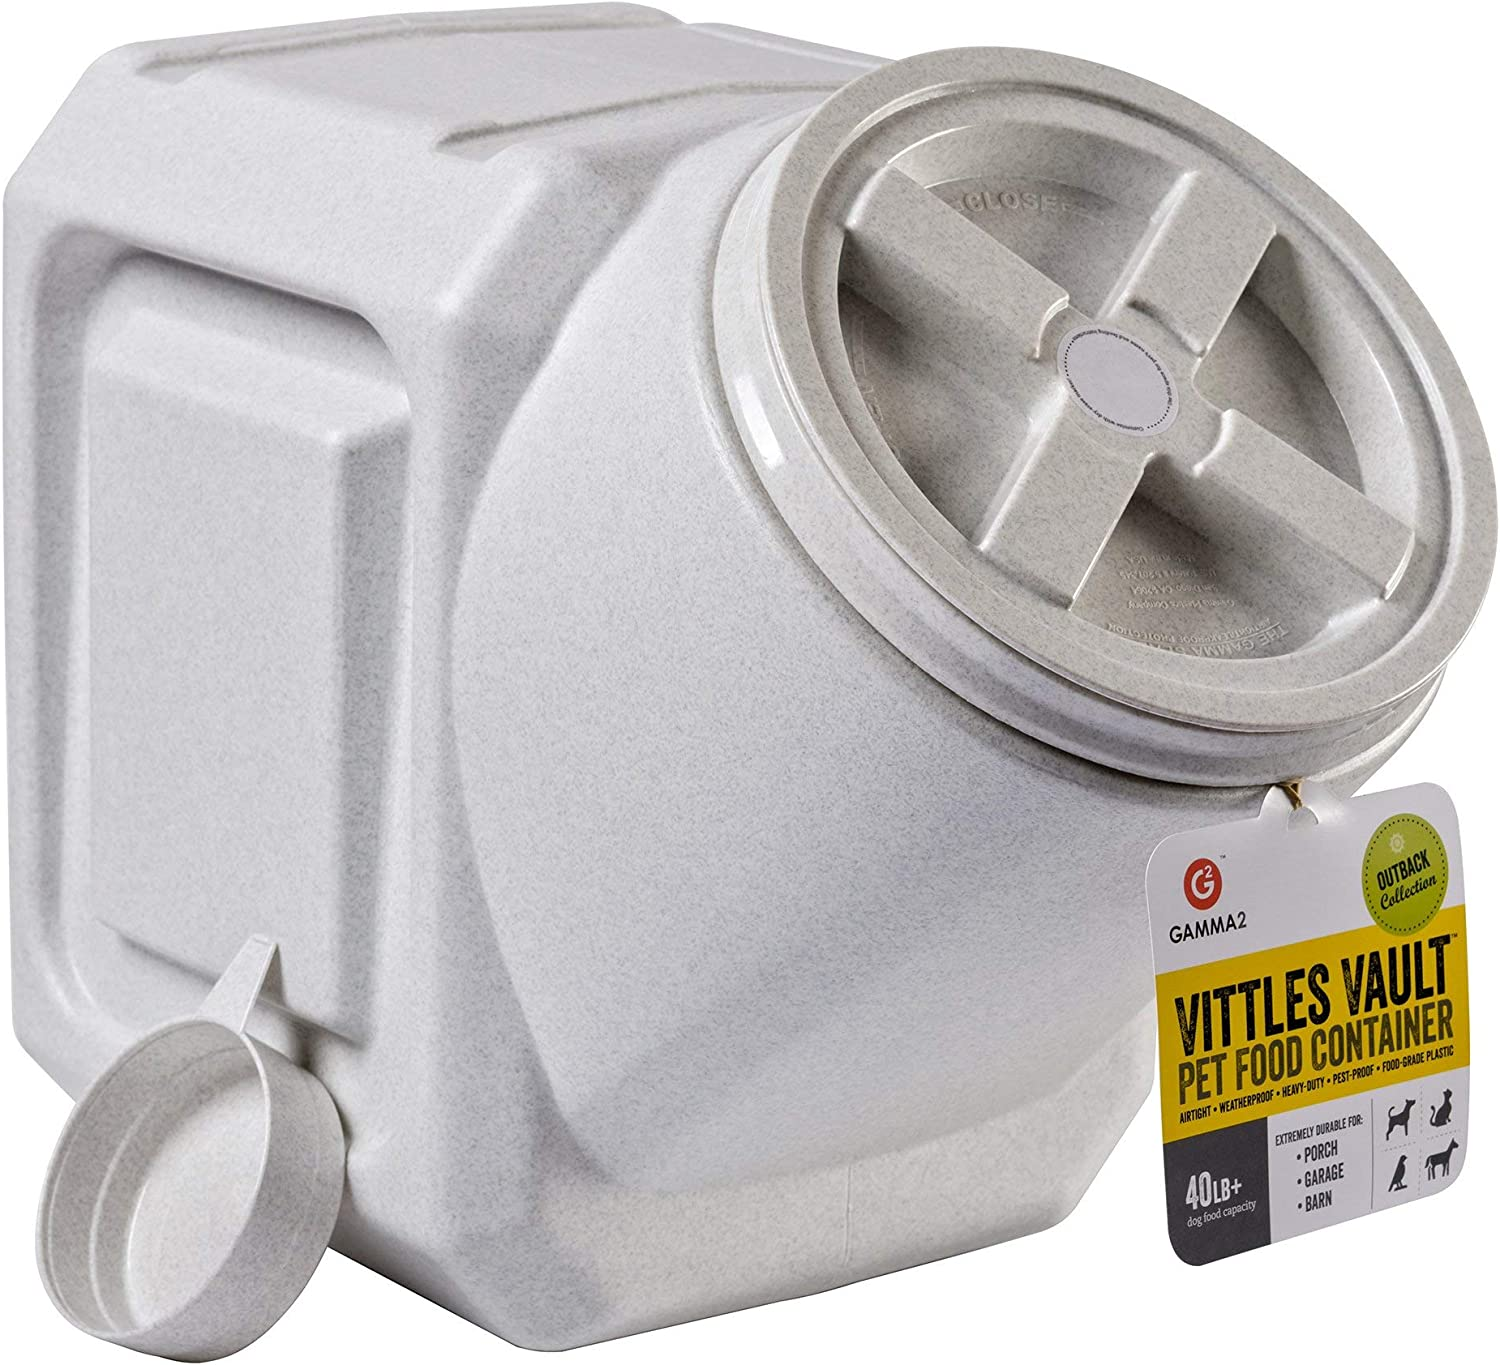 Vittles Vault Outback Stackable 40 lb Airtight Pet Food Storage Container. Premium Pack